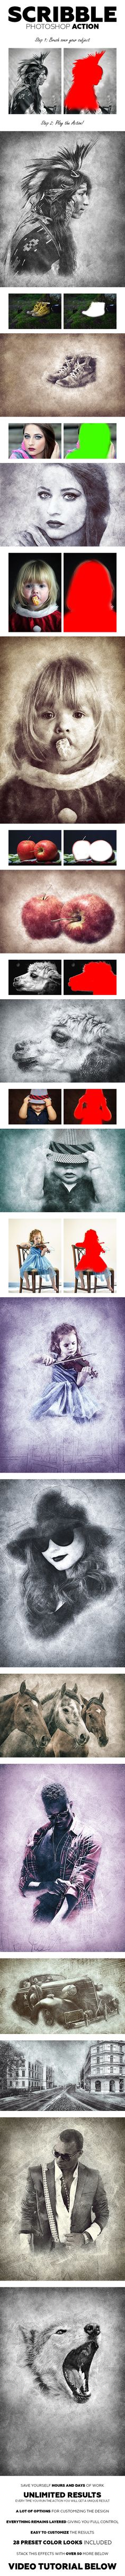 """Scribble Photoshop Action  <a class=""""pintag searchlink"""" data-query=""""%23photo"""" data-type=""""hashtag"""" href=""""/search/?q=%23photo&rs=hashtag"""" rel=""""nofollow"""" title=""""#photo search Pinterest"""">#photo</a> effects <a class=""""pintag"""" href=""""/explore/sketch/"""" title=""""#sketch explore Pinterest"""">#sketch</a> • Download ➝ <a href=""""https://graphicriver.net/item/scribble-photoshop-action/18407539?ref=pxcr"""" rel=""""nofollow"""" target=""""_blank"""">graphicriver.net/...</a>"""